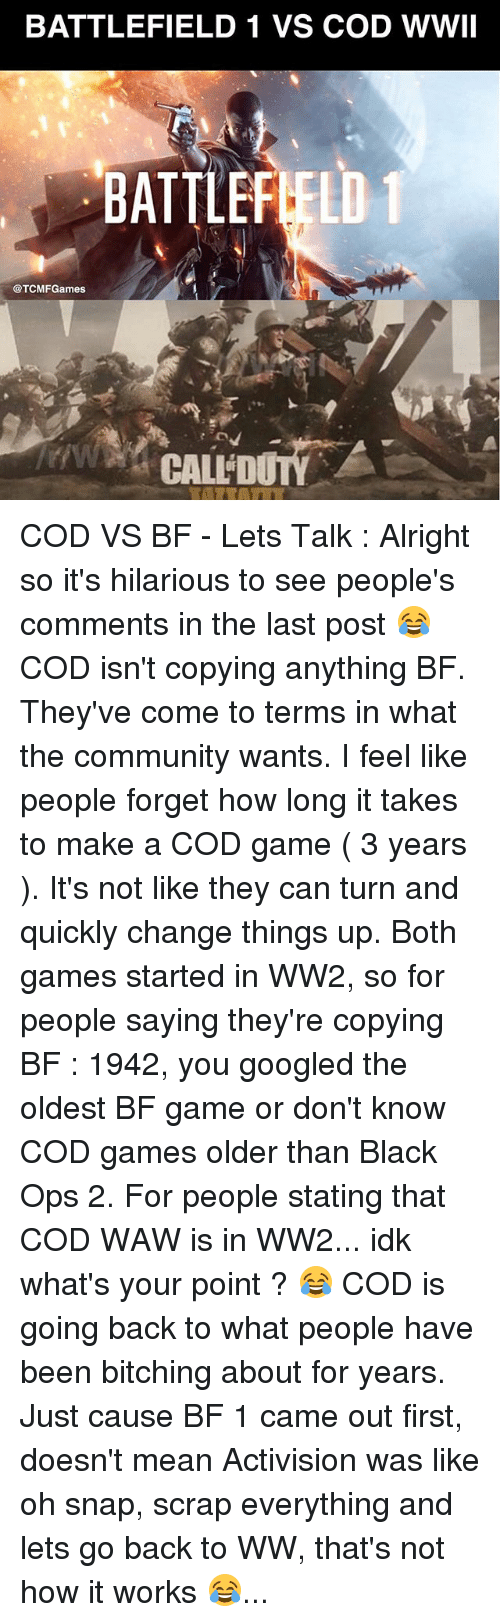 Battlefield 1: BATTLEFIELD 1 VS COD WWII  BATTLEFIELD 1  @TCMF Games  CALLiD COD VS BF - Lets Talk : Alright so it's hilarious to see people's comments in the last post 😂 COD isn't copying anything BF. They've come to terms in what the community wants. I feel like people forget how long it takes to make a COD game ( 3 years ). It's not like they can turn and quickly change things up. Both games started in WW2, so for people saying they're copying BF : 1942, you googled the oldest BF game or don't know COD games older than Black Ops 2. For people stating that COD WAW is in WW2... idk what's your point ? 😂 COD is going back to what people have been bitching about for years. Just cause BF 1 came out first, doesn't mean Activision was like oh snap, scrap everything and lets go back to WW, that's not how it works 😂...